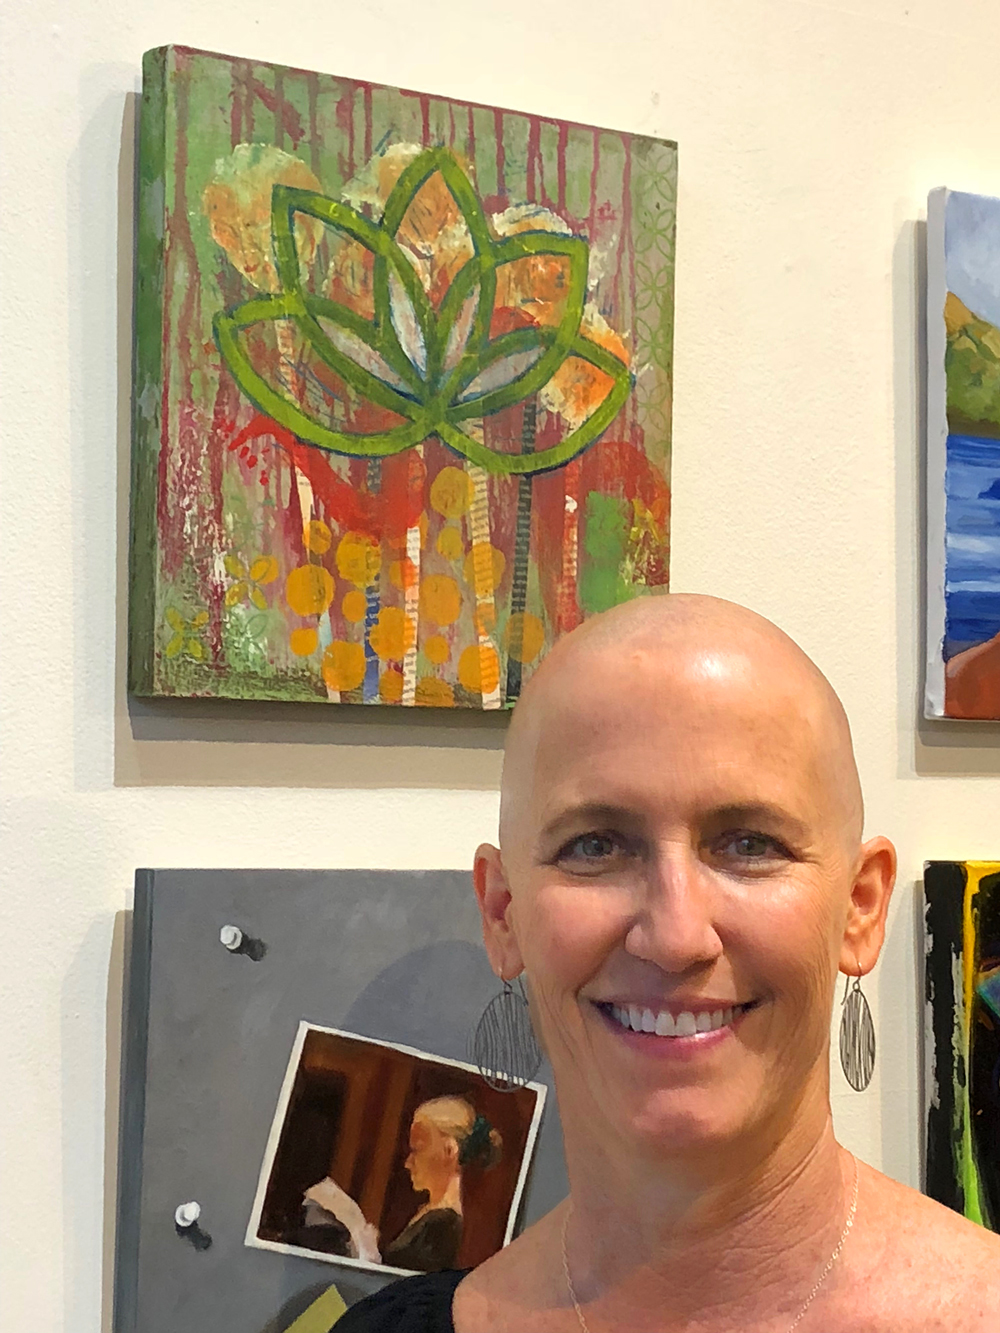 - I have a painting for sale in a group show and the opening was last night at the Seventh Annual Five15 Arts Power Of 5on grand avenue. Lots of people coming thru, it was a overwhelming as it was really my first outing other than lunch or dinner. Afterwards we popped into the Phoenix Art Museum that was also packed with people. We didn't stay long but it sure was nice to see so many folks out getting cultured.A nice way to spend our 32nd anniversary!